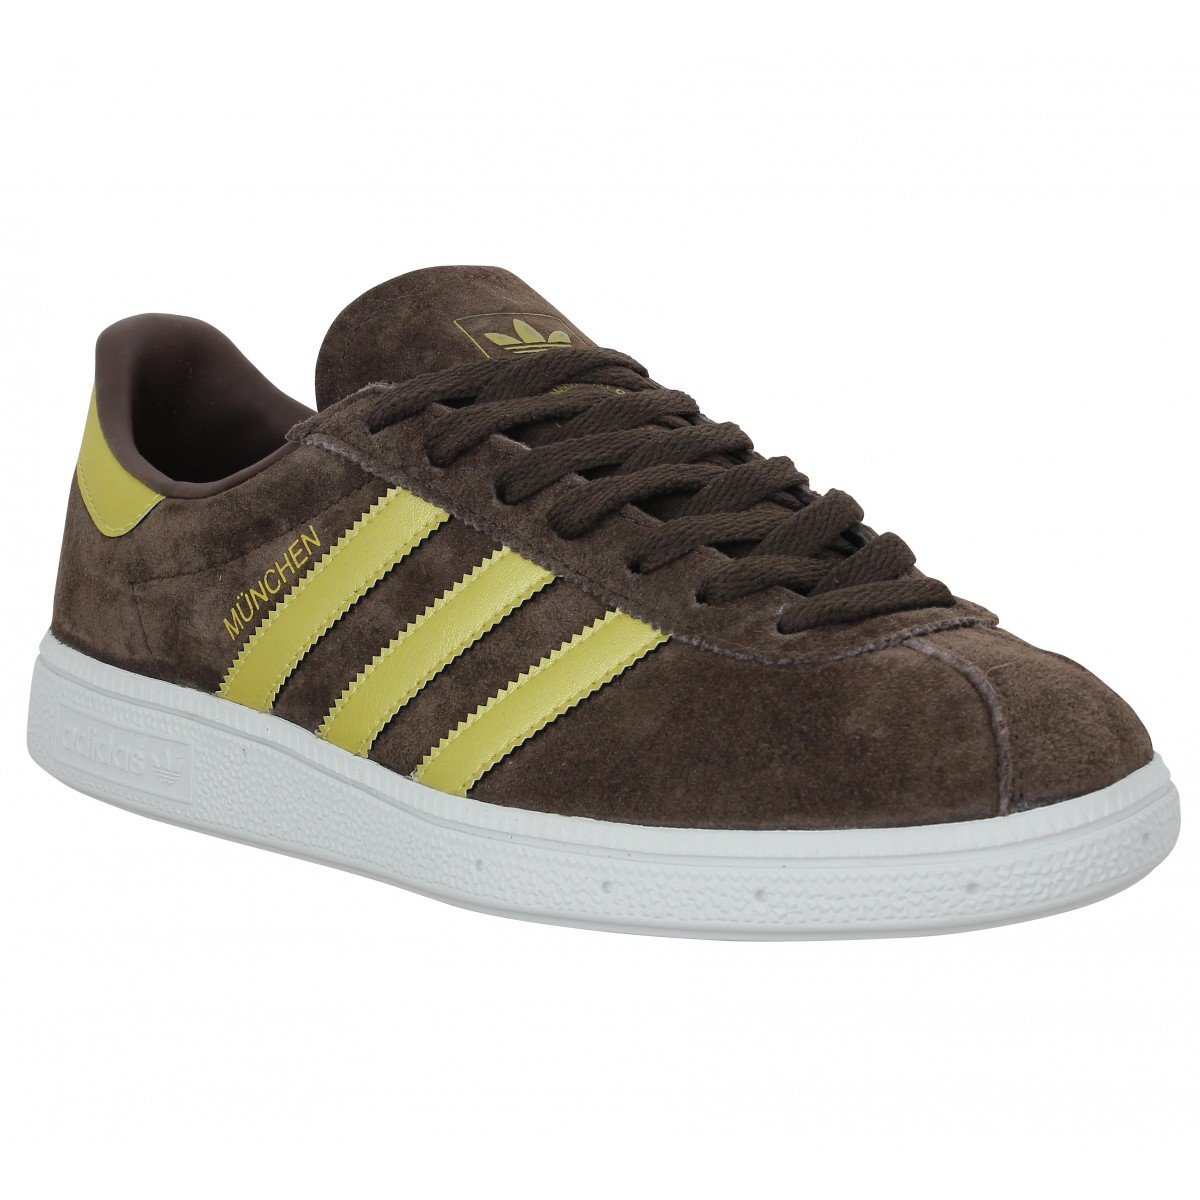 official photos b1db2 25f2c Adidas Homme Munchen Velours -40.